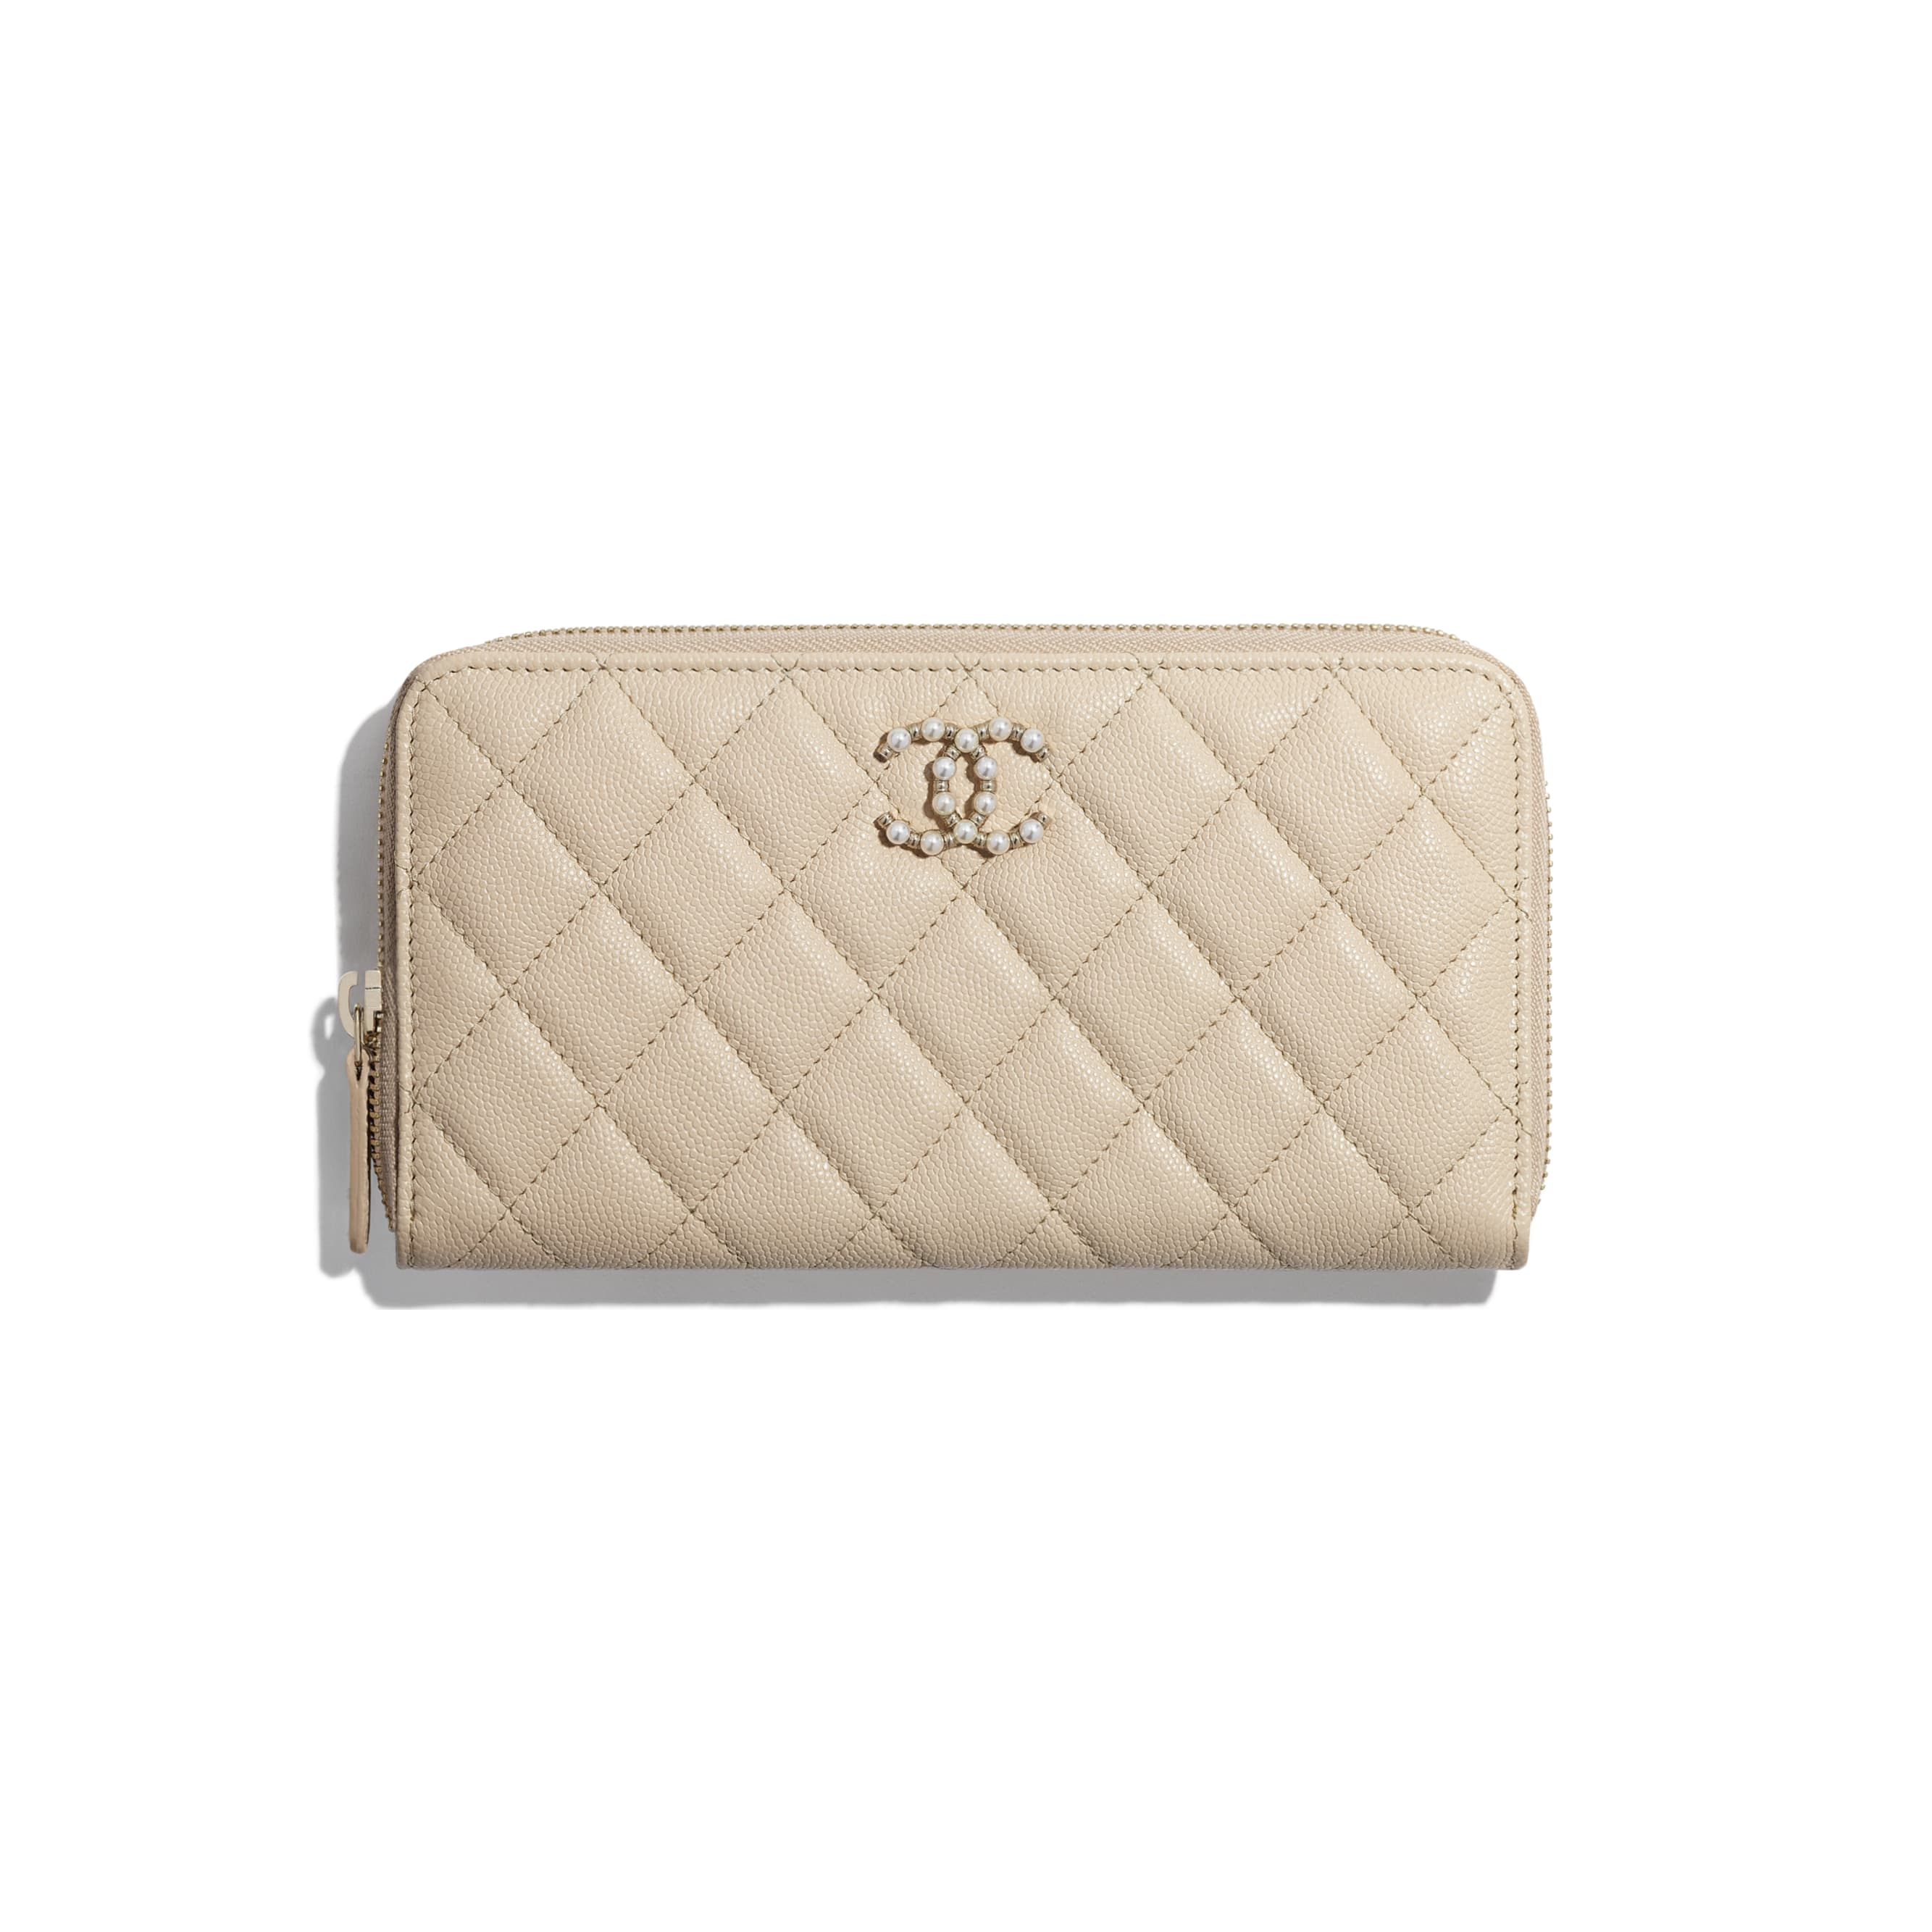 Long Zipped Wallet - Beige - Grained Calfskin & Gold-Tone Metal - CHANEL - Default view - see standard sized version